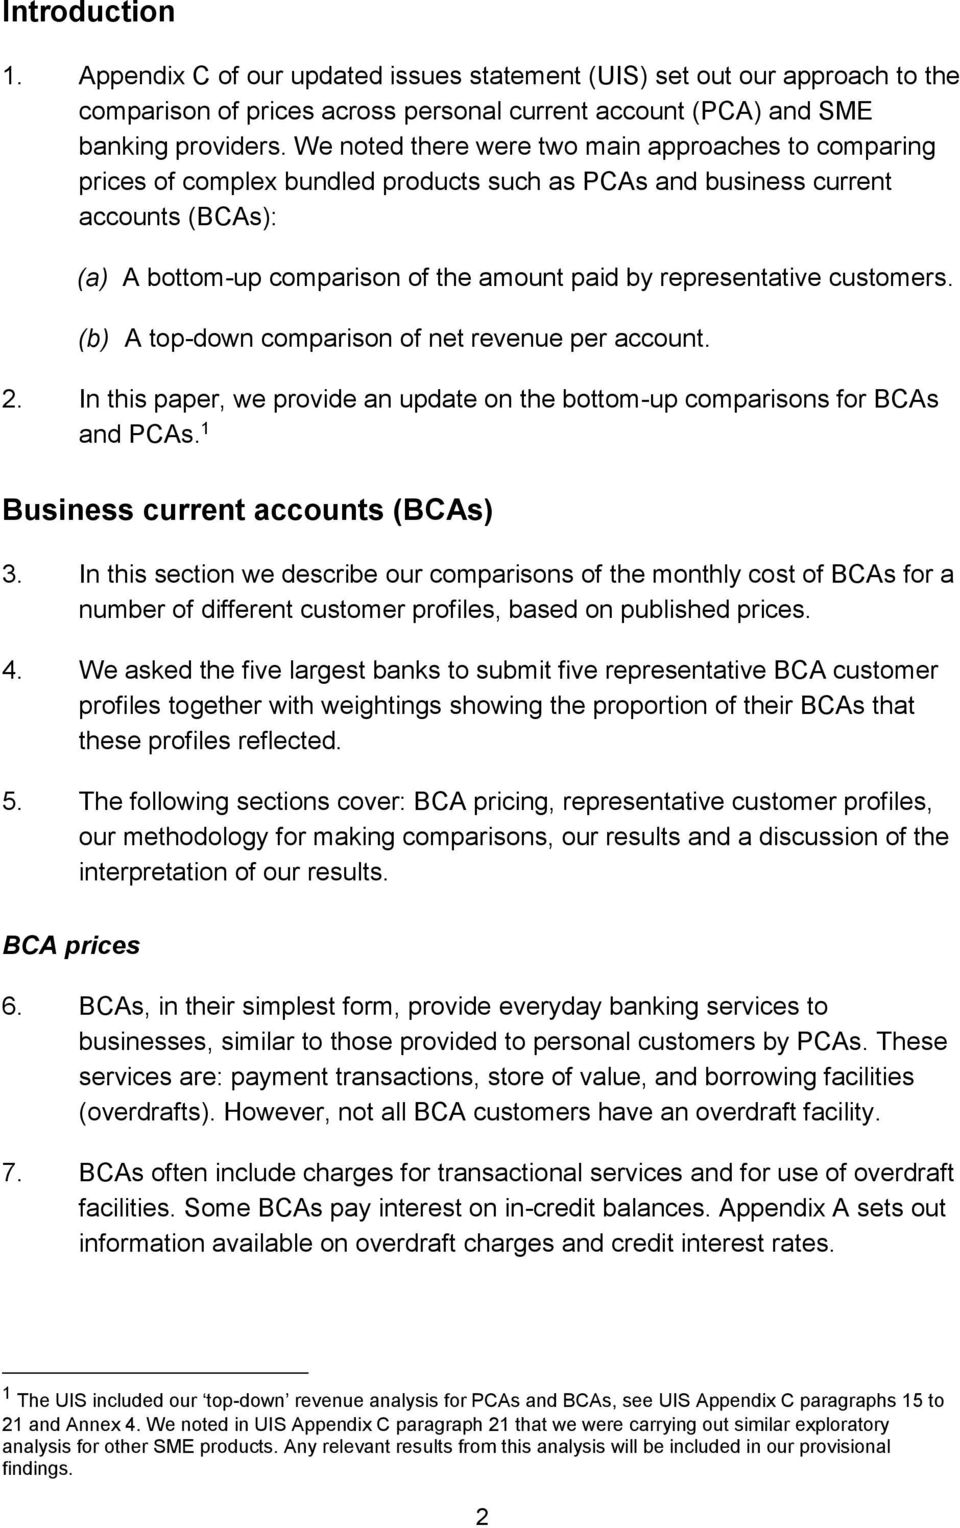 representative customers. (b) A top-down comparison of net revenue per account. 2. In this paper, we provide an update on the bottom-up comparisons for BCAs and PCAs.